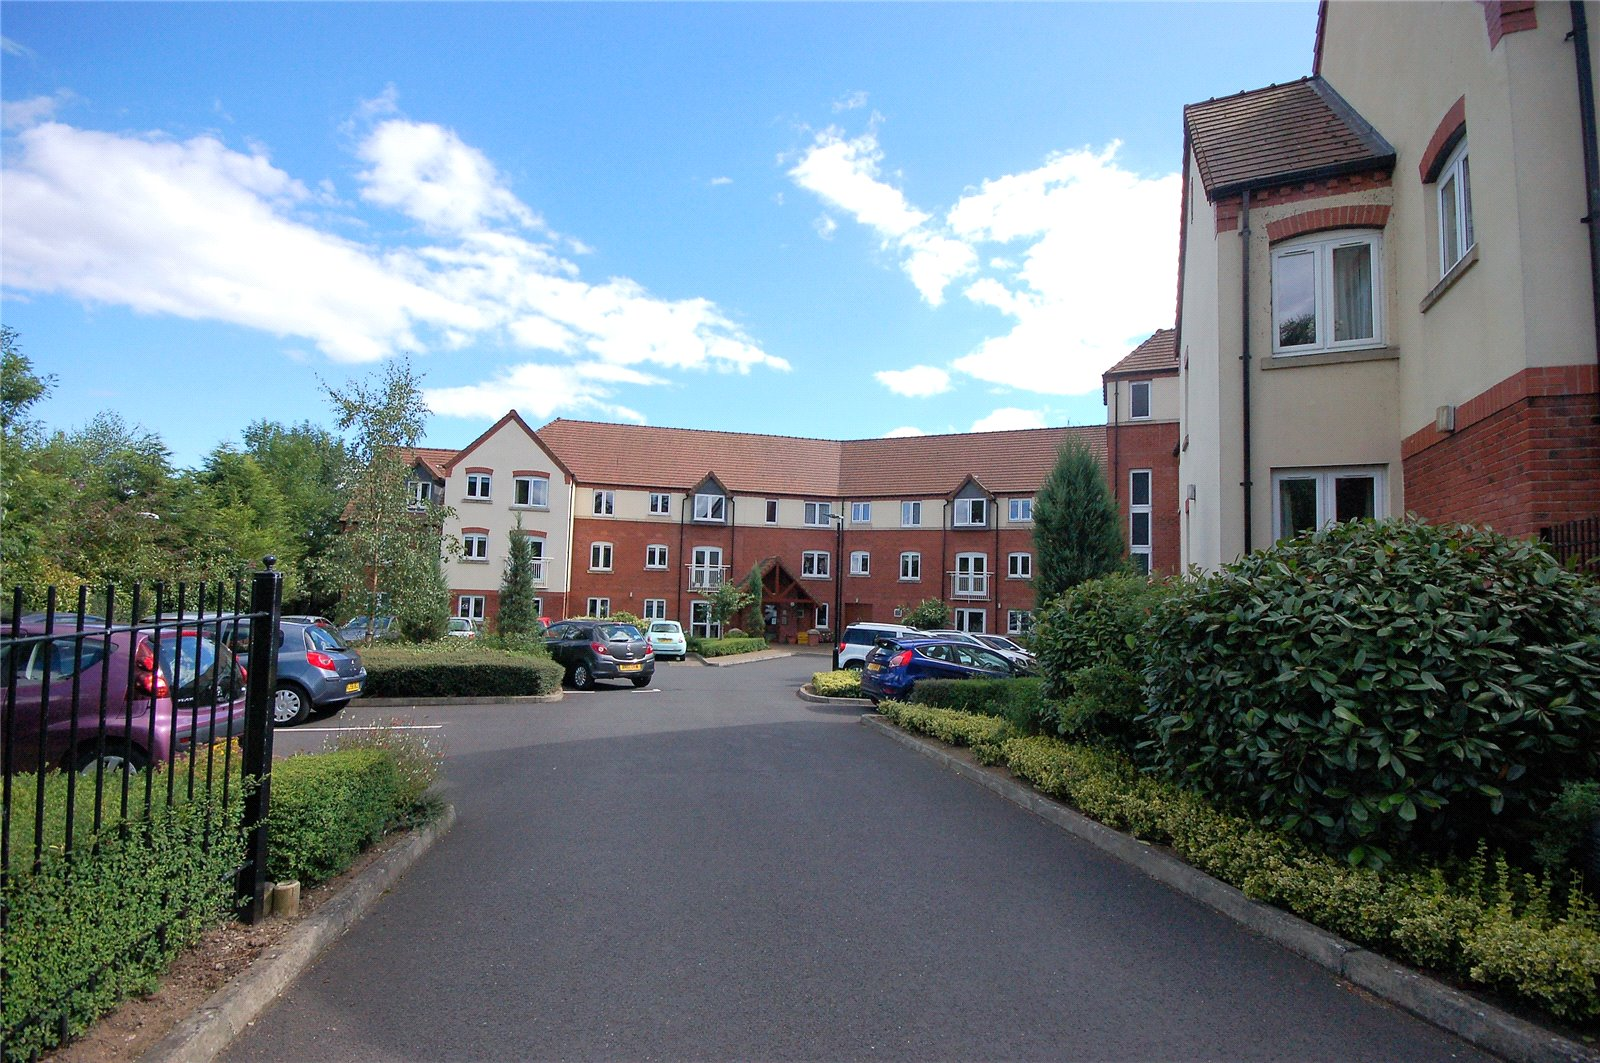 2 Bedrooms Retirement Property for sale in 41 Farthings Court, Kings Loade, Bridgnorth, Shropshire, WV16